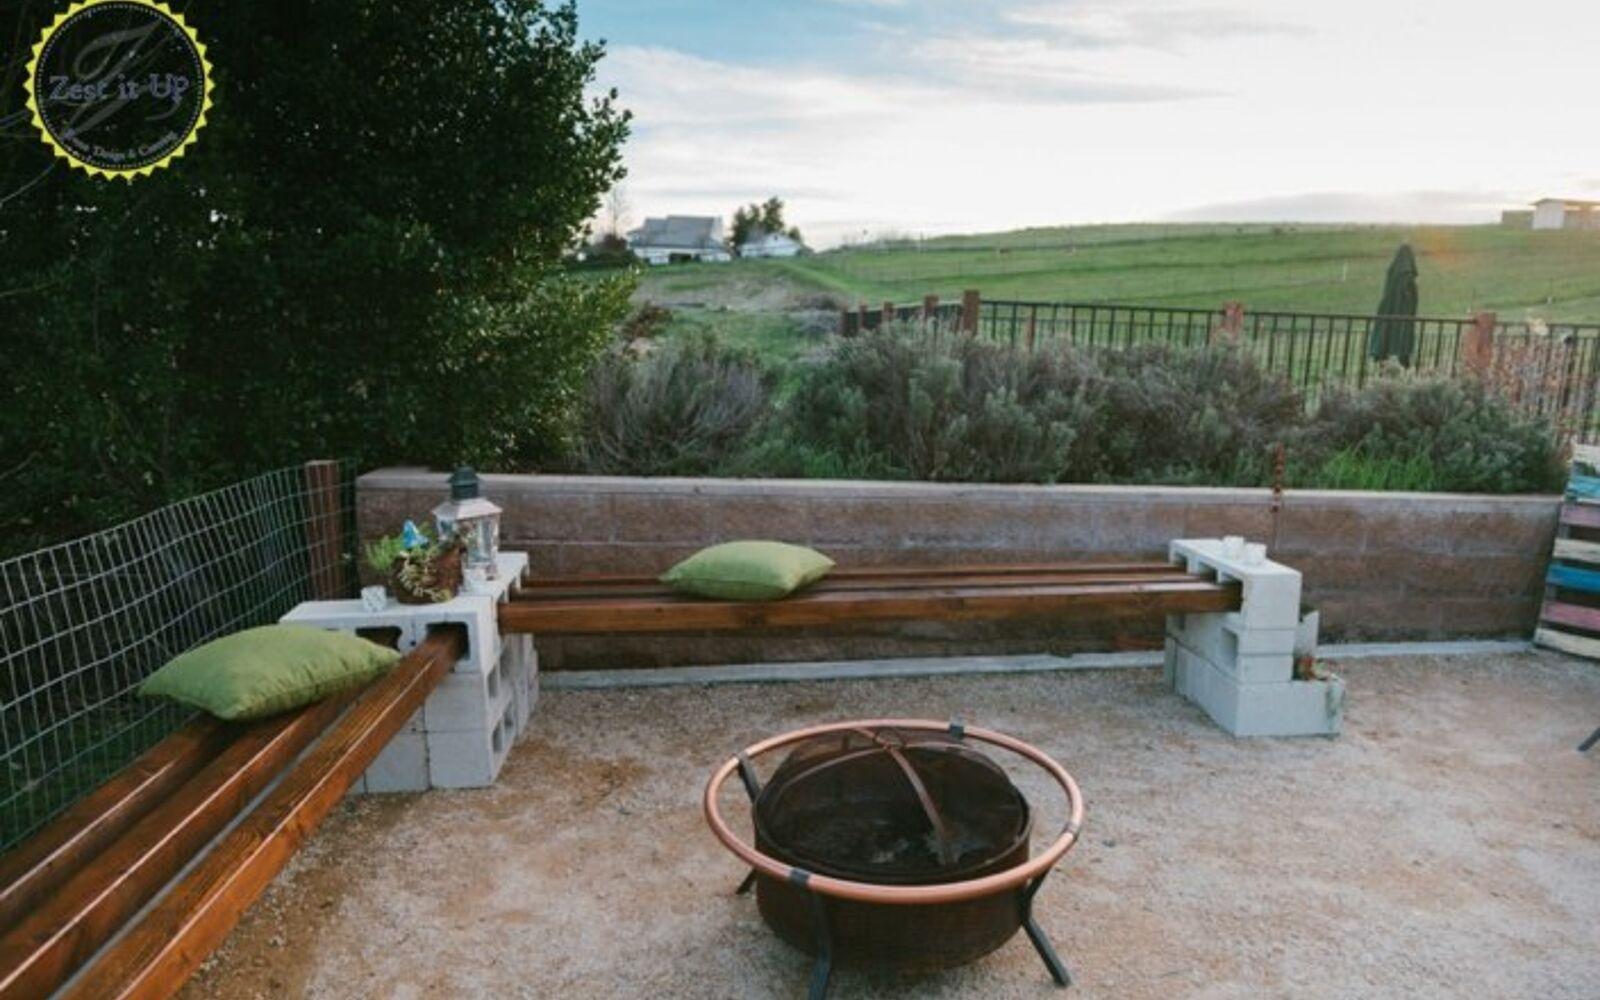 s upgrade your backyard with these 30 clever ideas, Add some extra seating with a bench